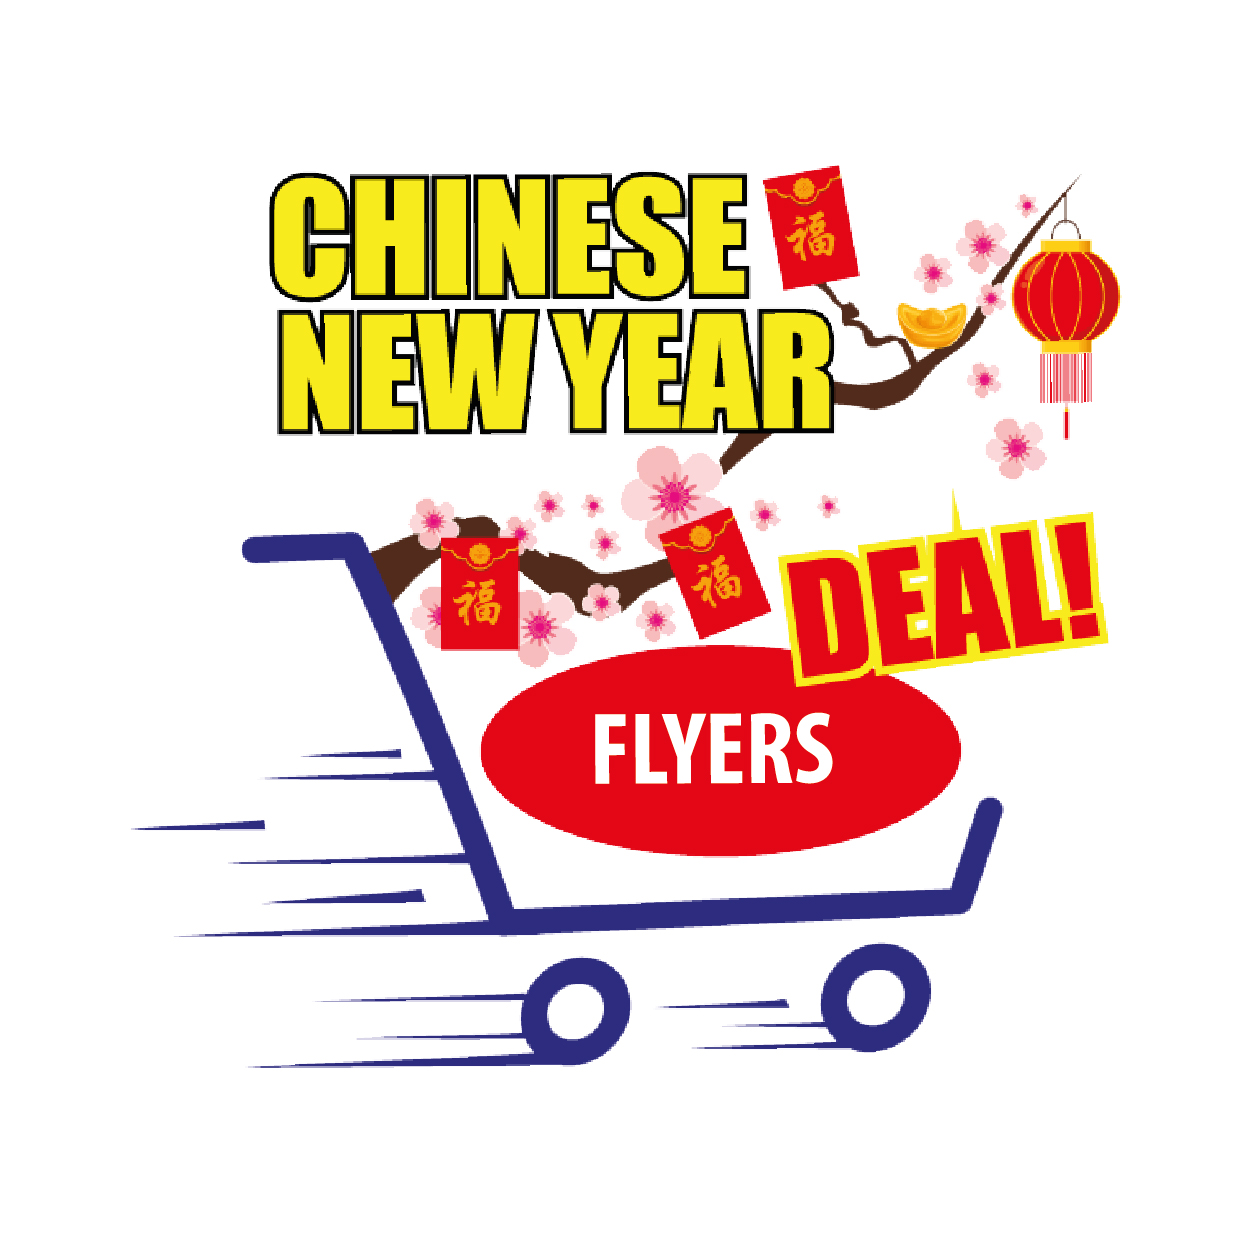 Chinese New Year Flyers Promotion